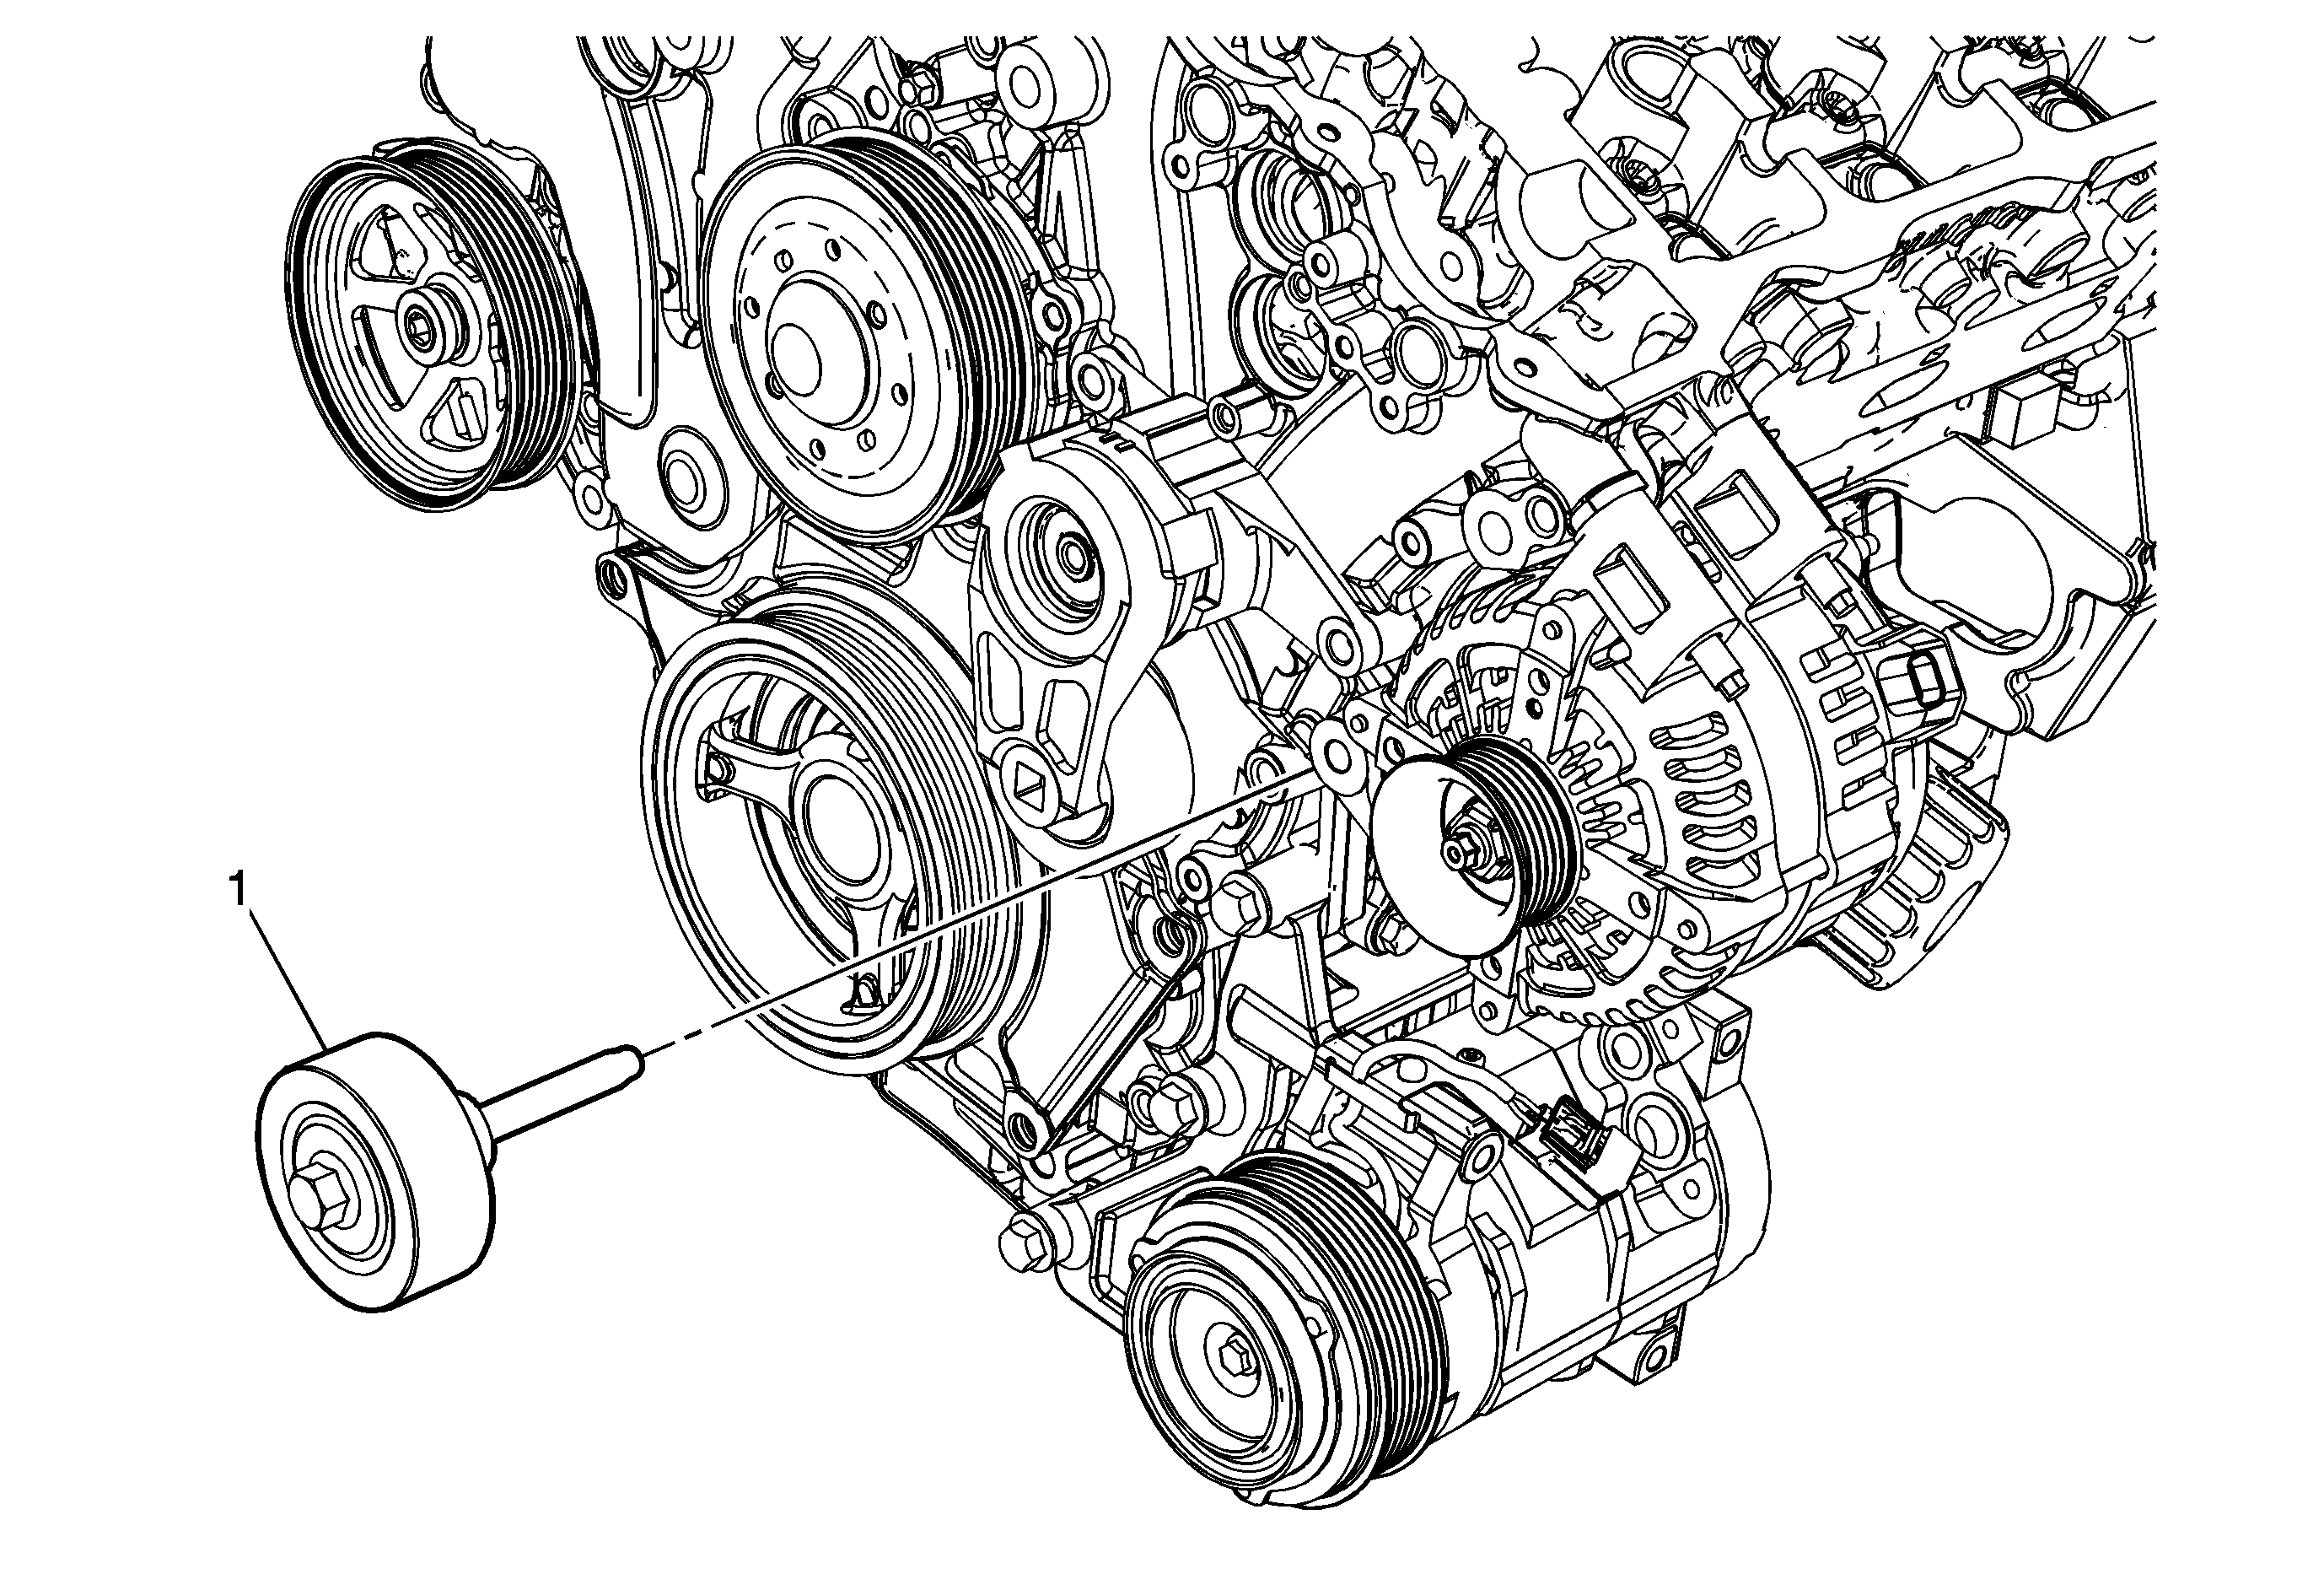 [DIAGRAM_3US]  TO_4053] Traverse Engine Diagram Schematic Wiring | 2010 Chevy Traverse Engine Diagram |  | Numdin Redne Romet Apom Simij Knie Rdona Benol Eatte Mohammedshrine Librar  Wiring 101